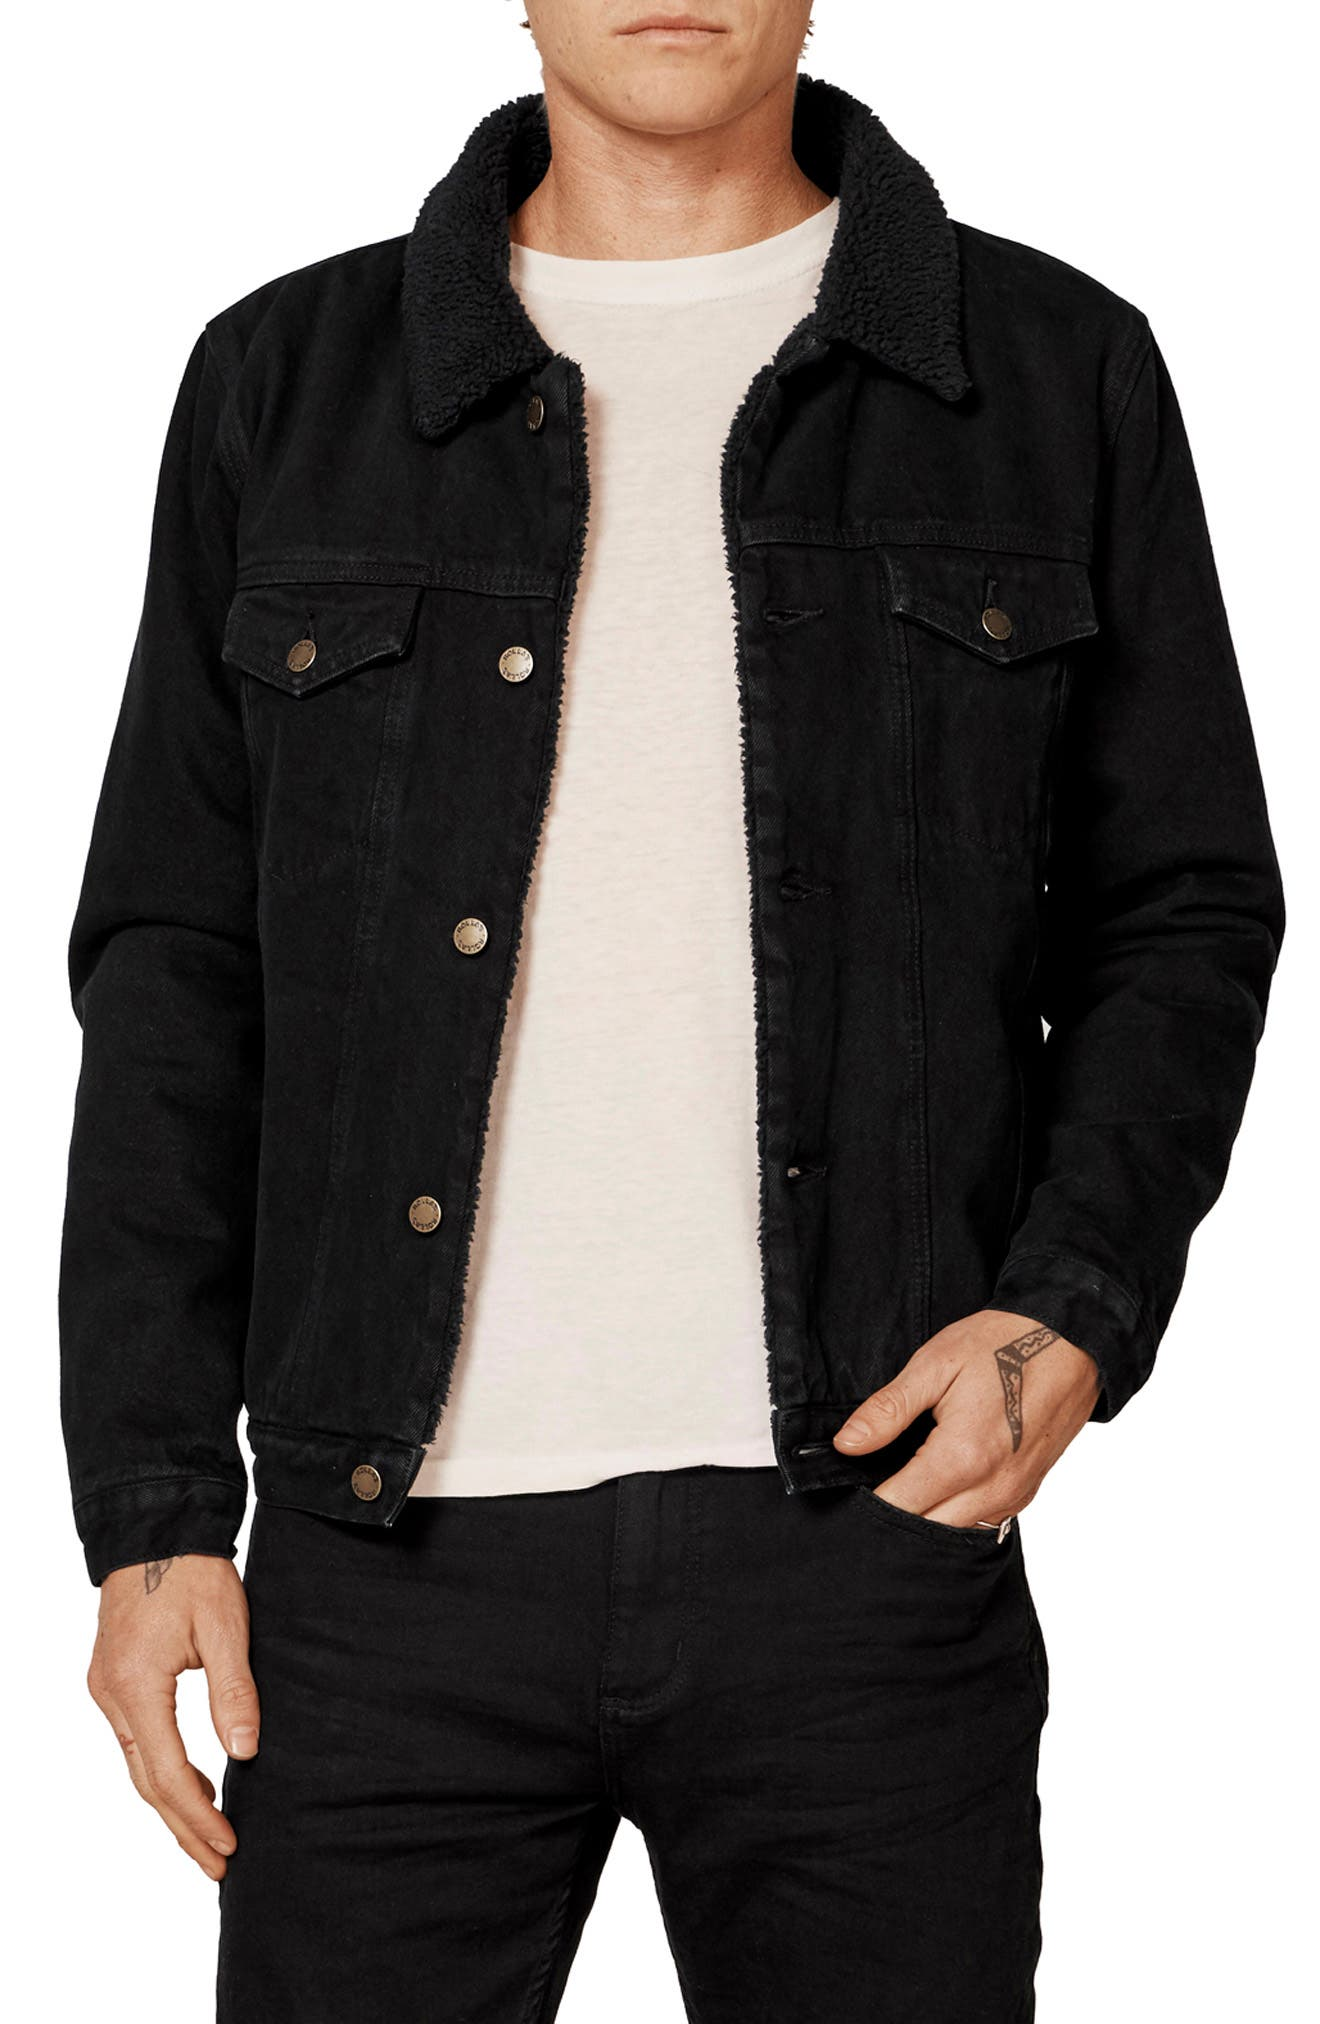 ROLLA'S,                             Lined Denim Jacket,                             Alternate thumbnail 4, color,                             002